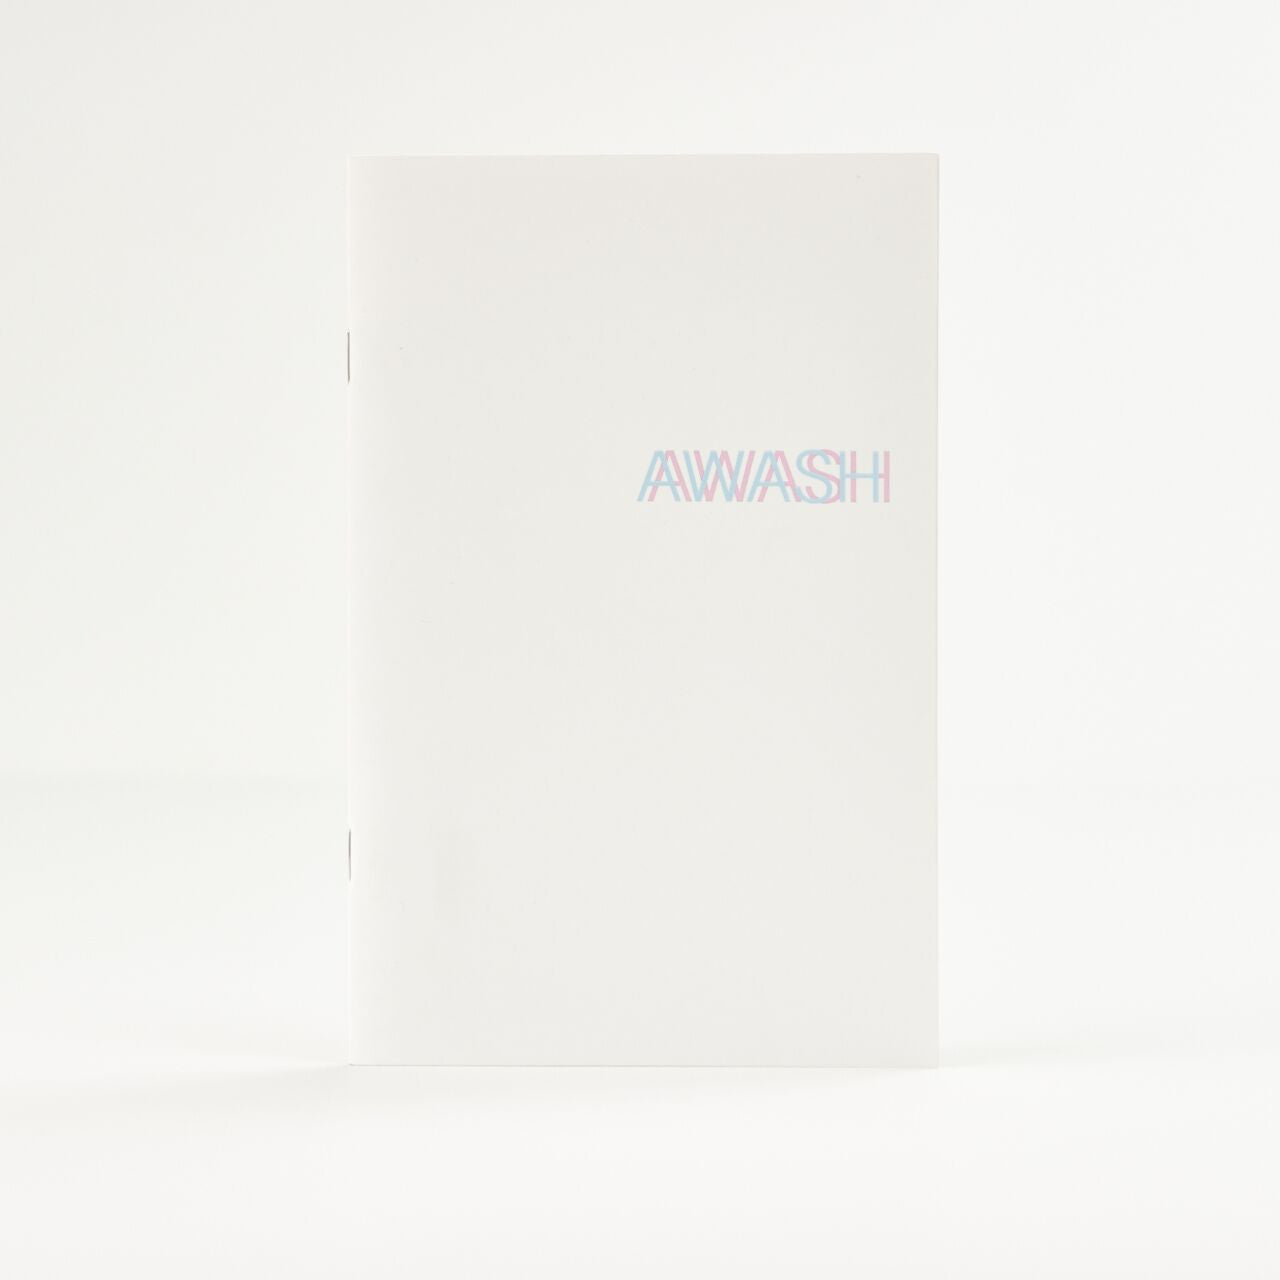 Awash Zine, Books and Zines  by  Awash Zine Tappan